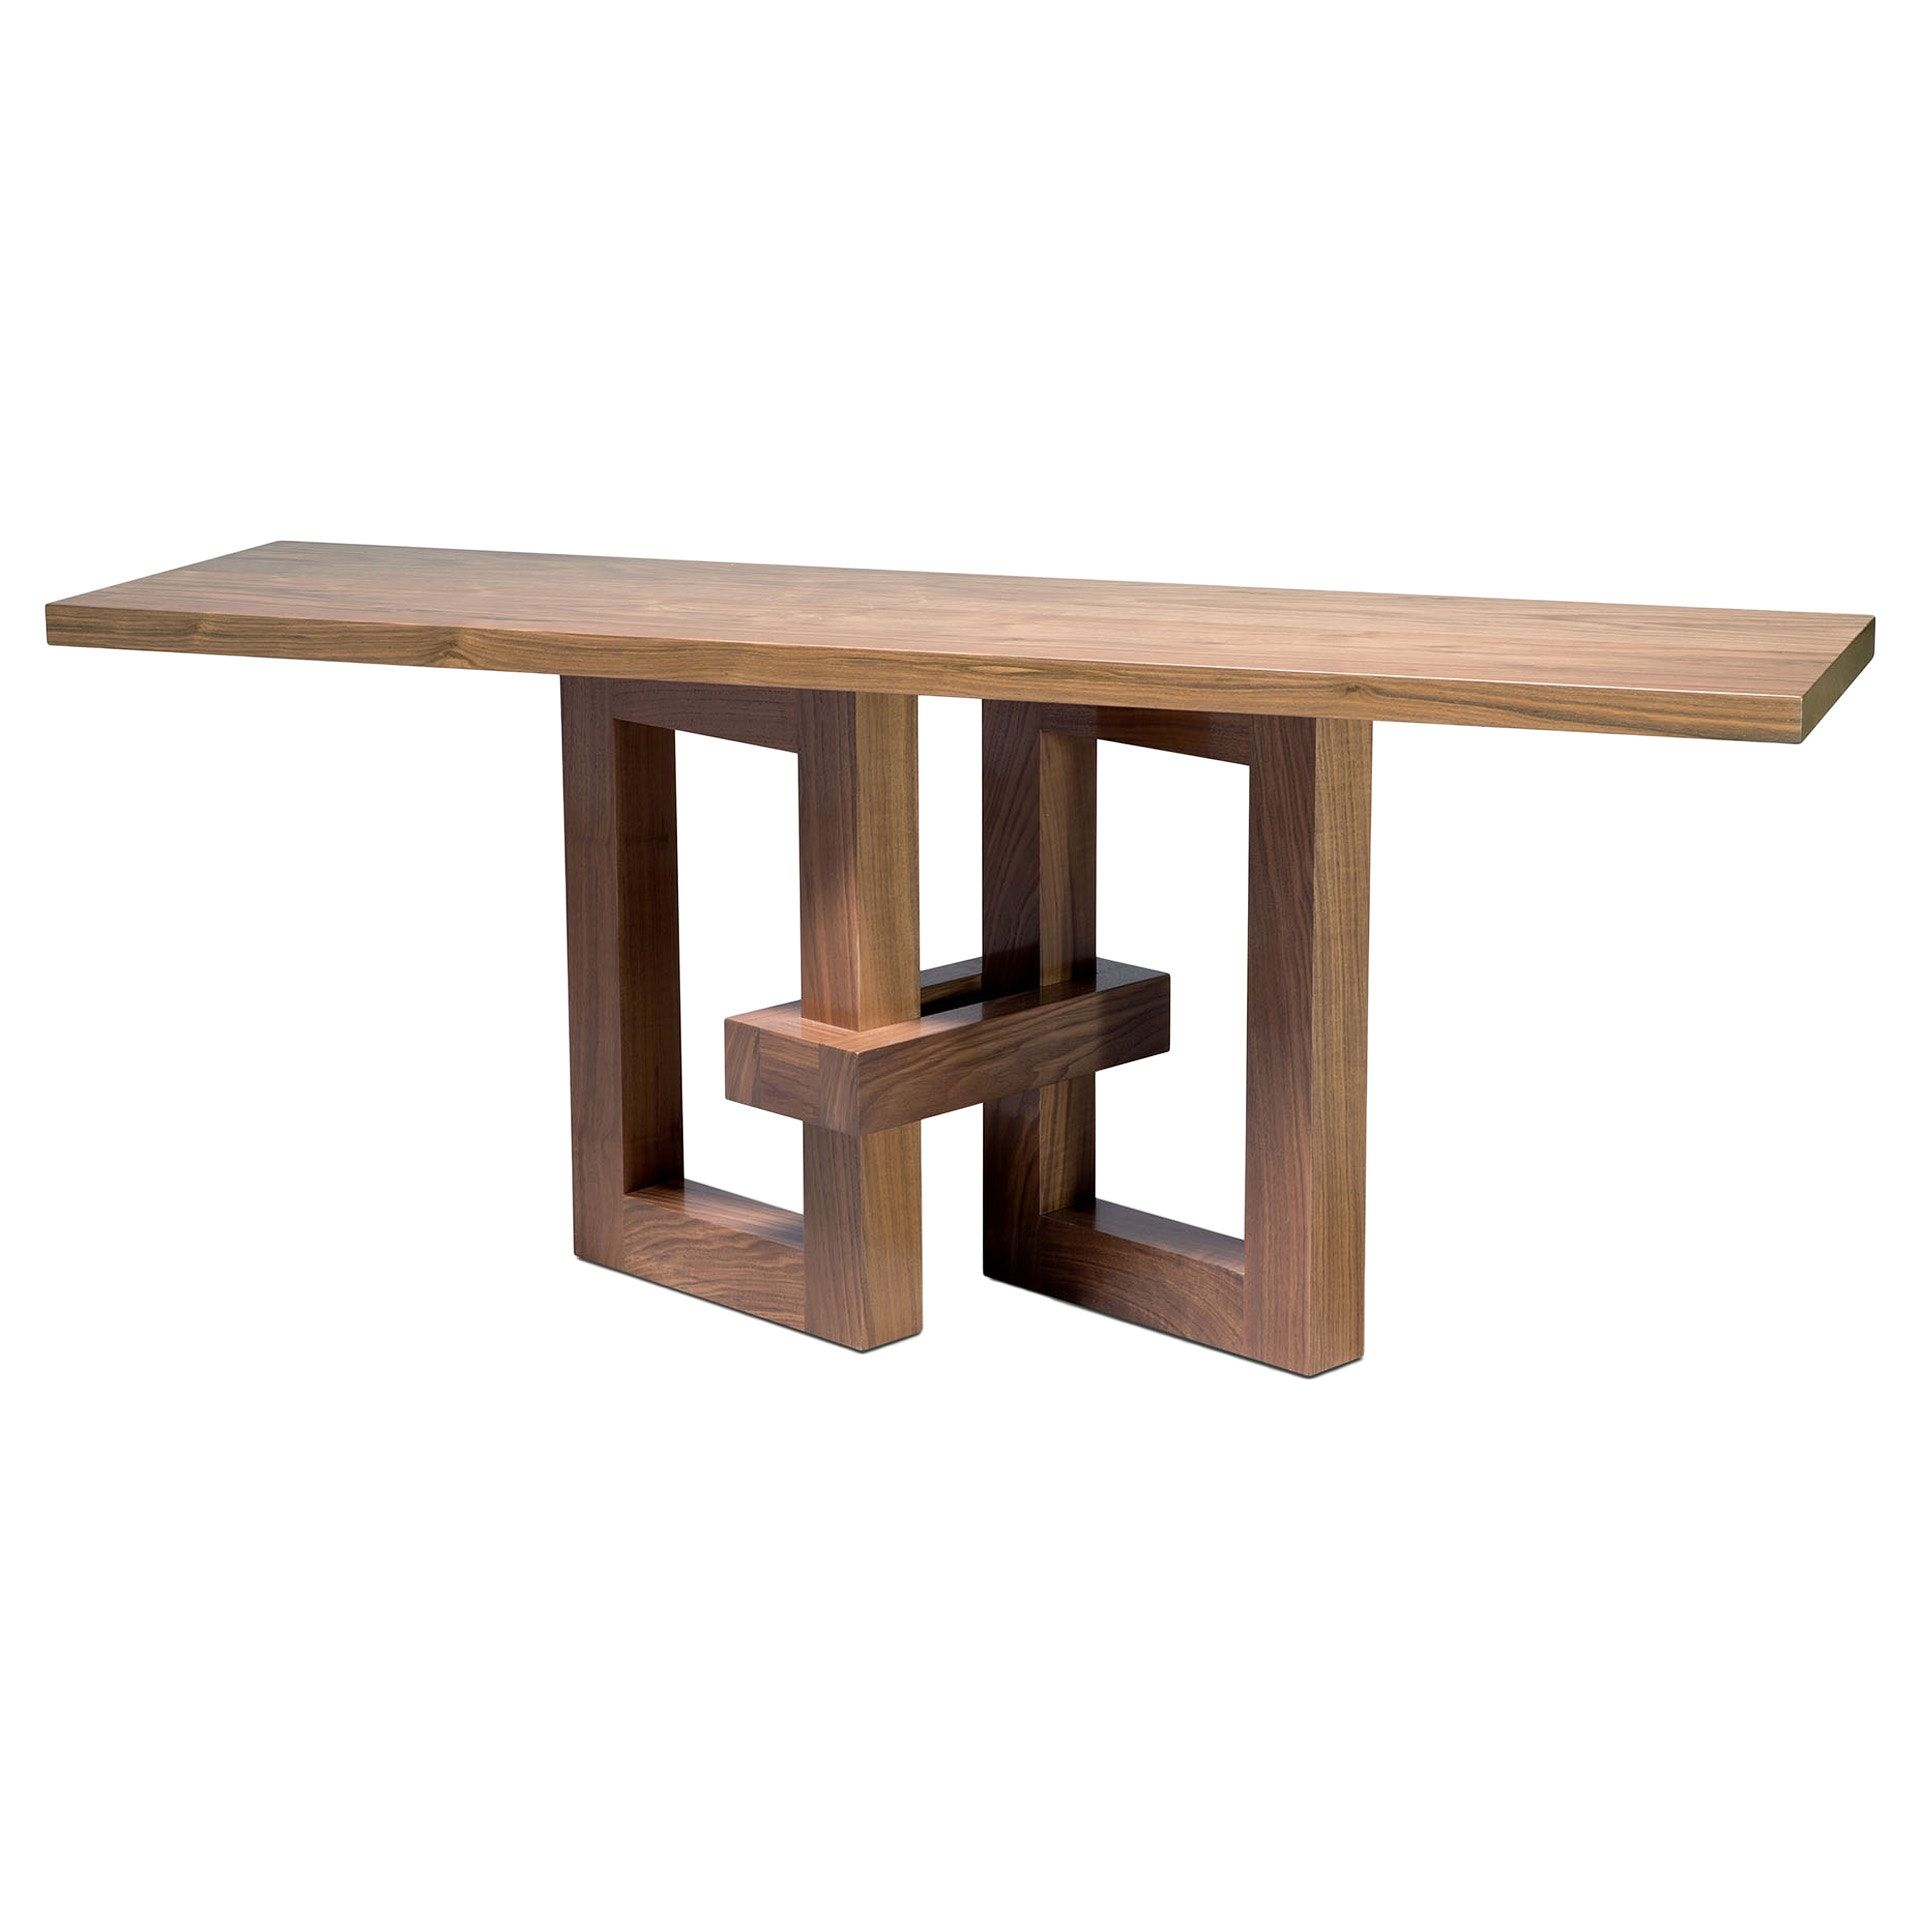 Buy Link Console Table By Knowlton Brothers Made To Order Designer Furniture Contemporary Wood Dining Table Contemporary Console Table Contemporary Console